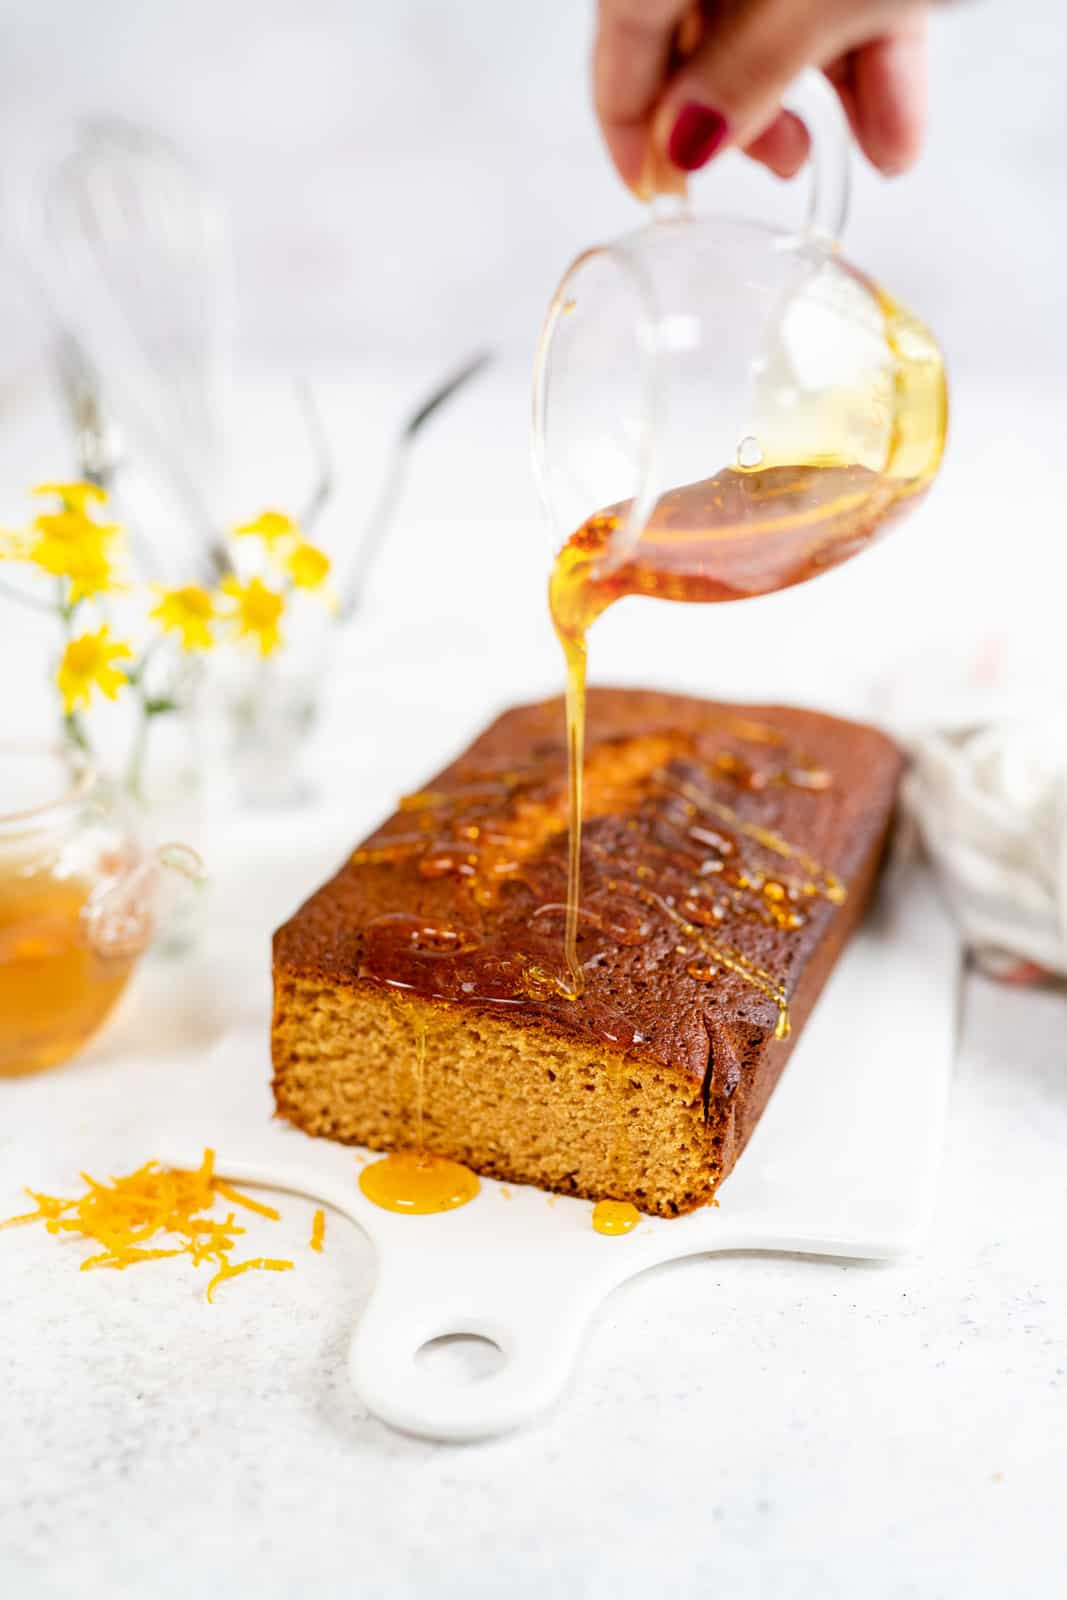 Golden syrup cake drizzled with extra golden syrup